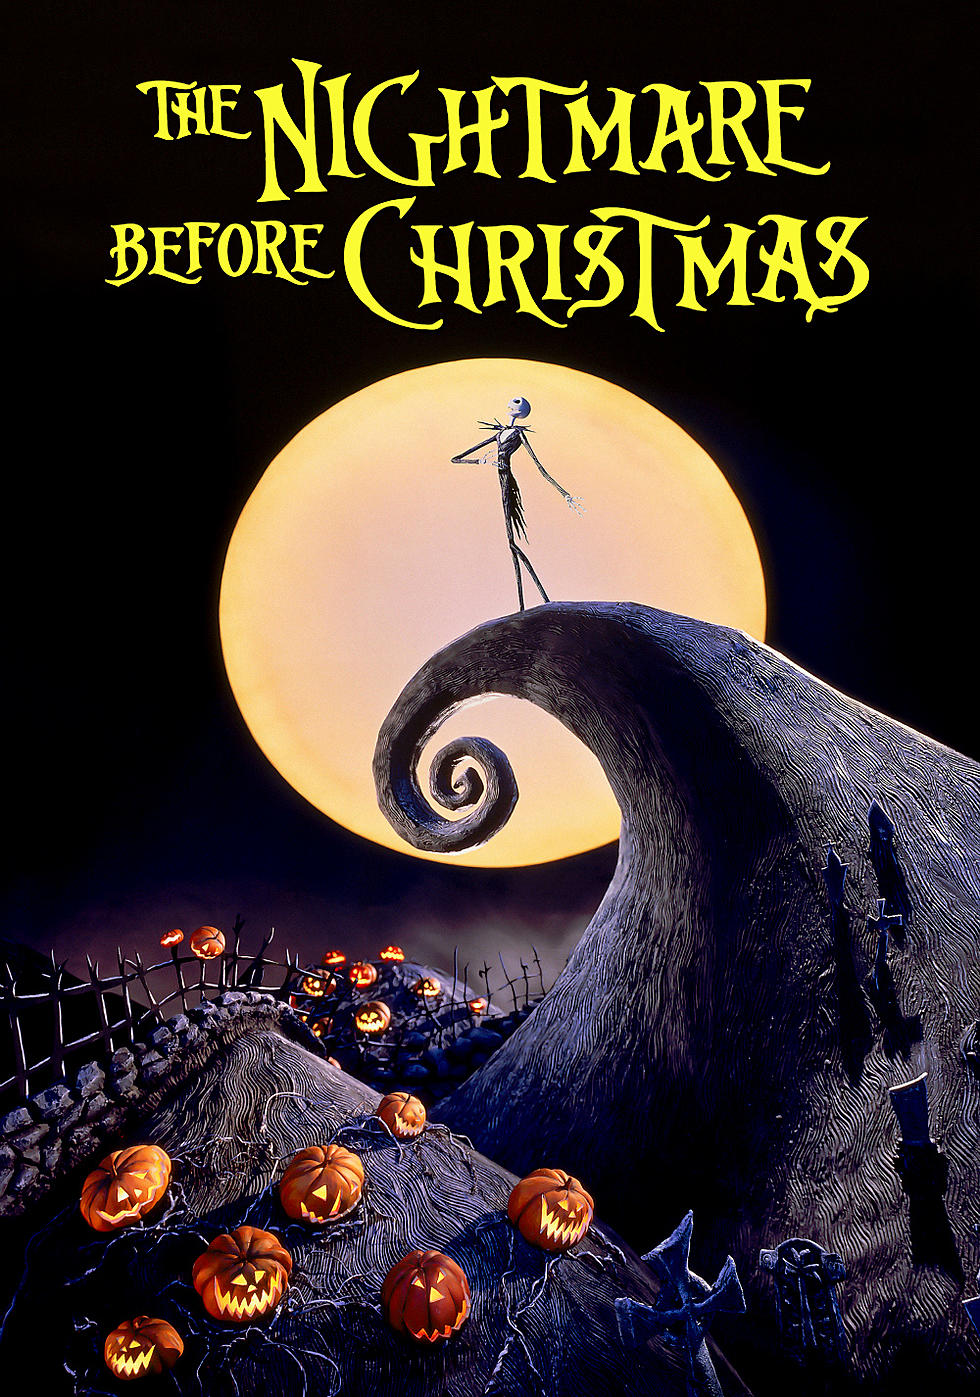 Best Christmas Movies to Watch the Day After Thanksgiving!